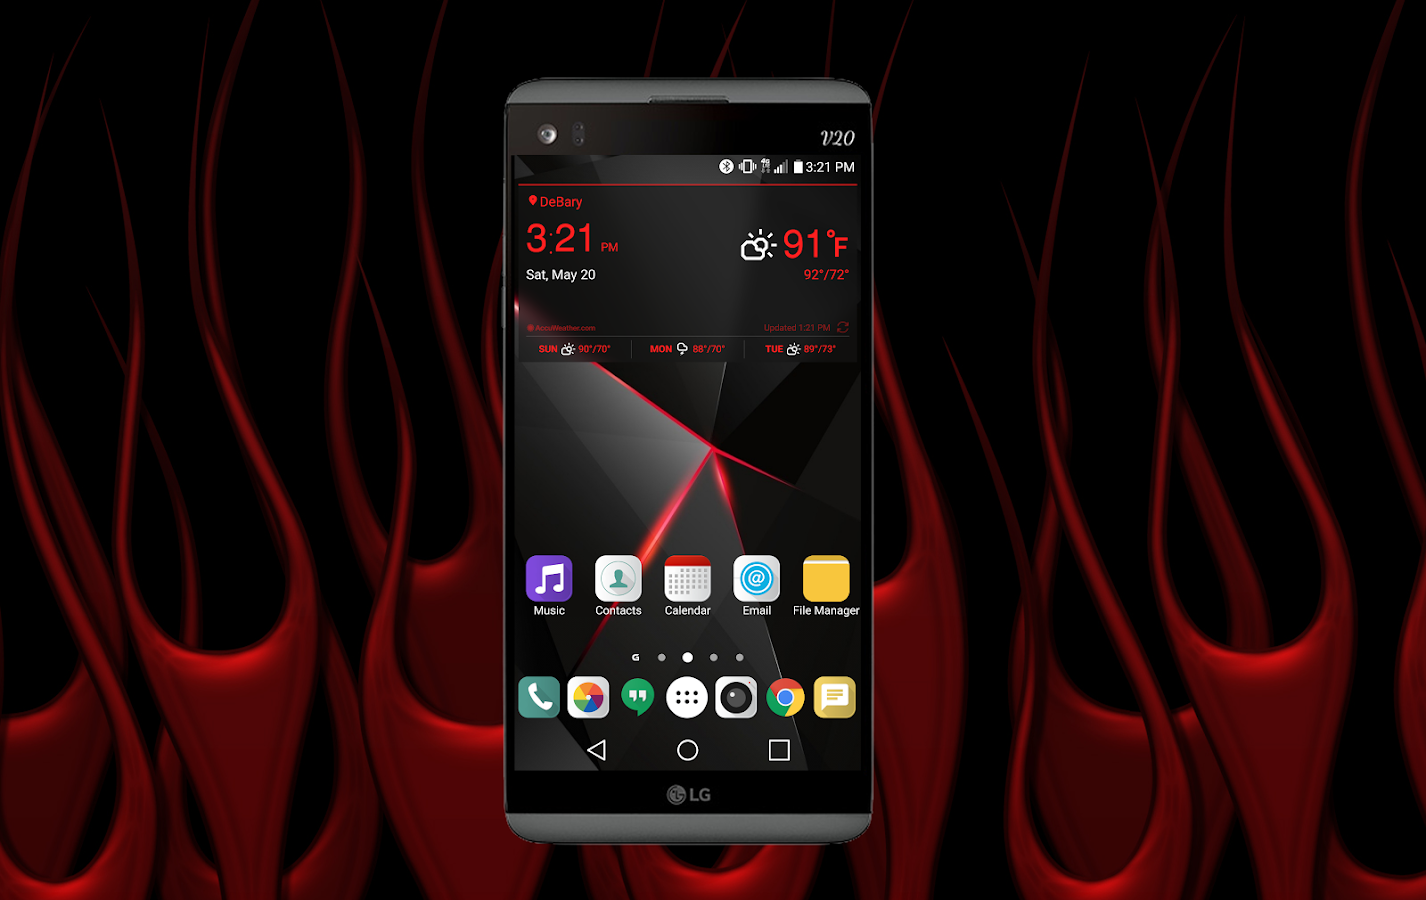 Ravished Theme LG G6 android apps download